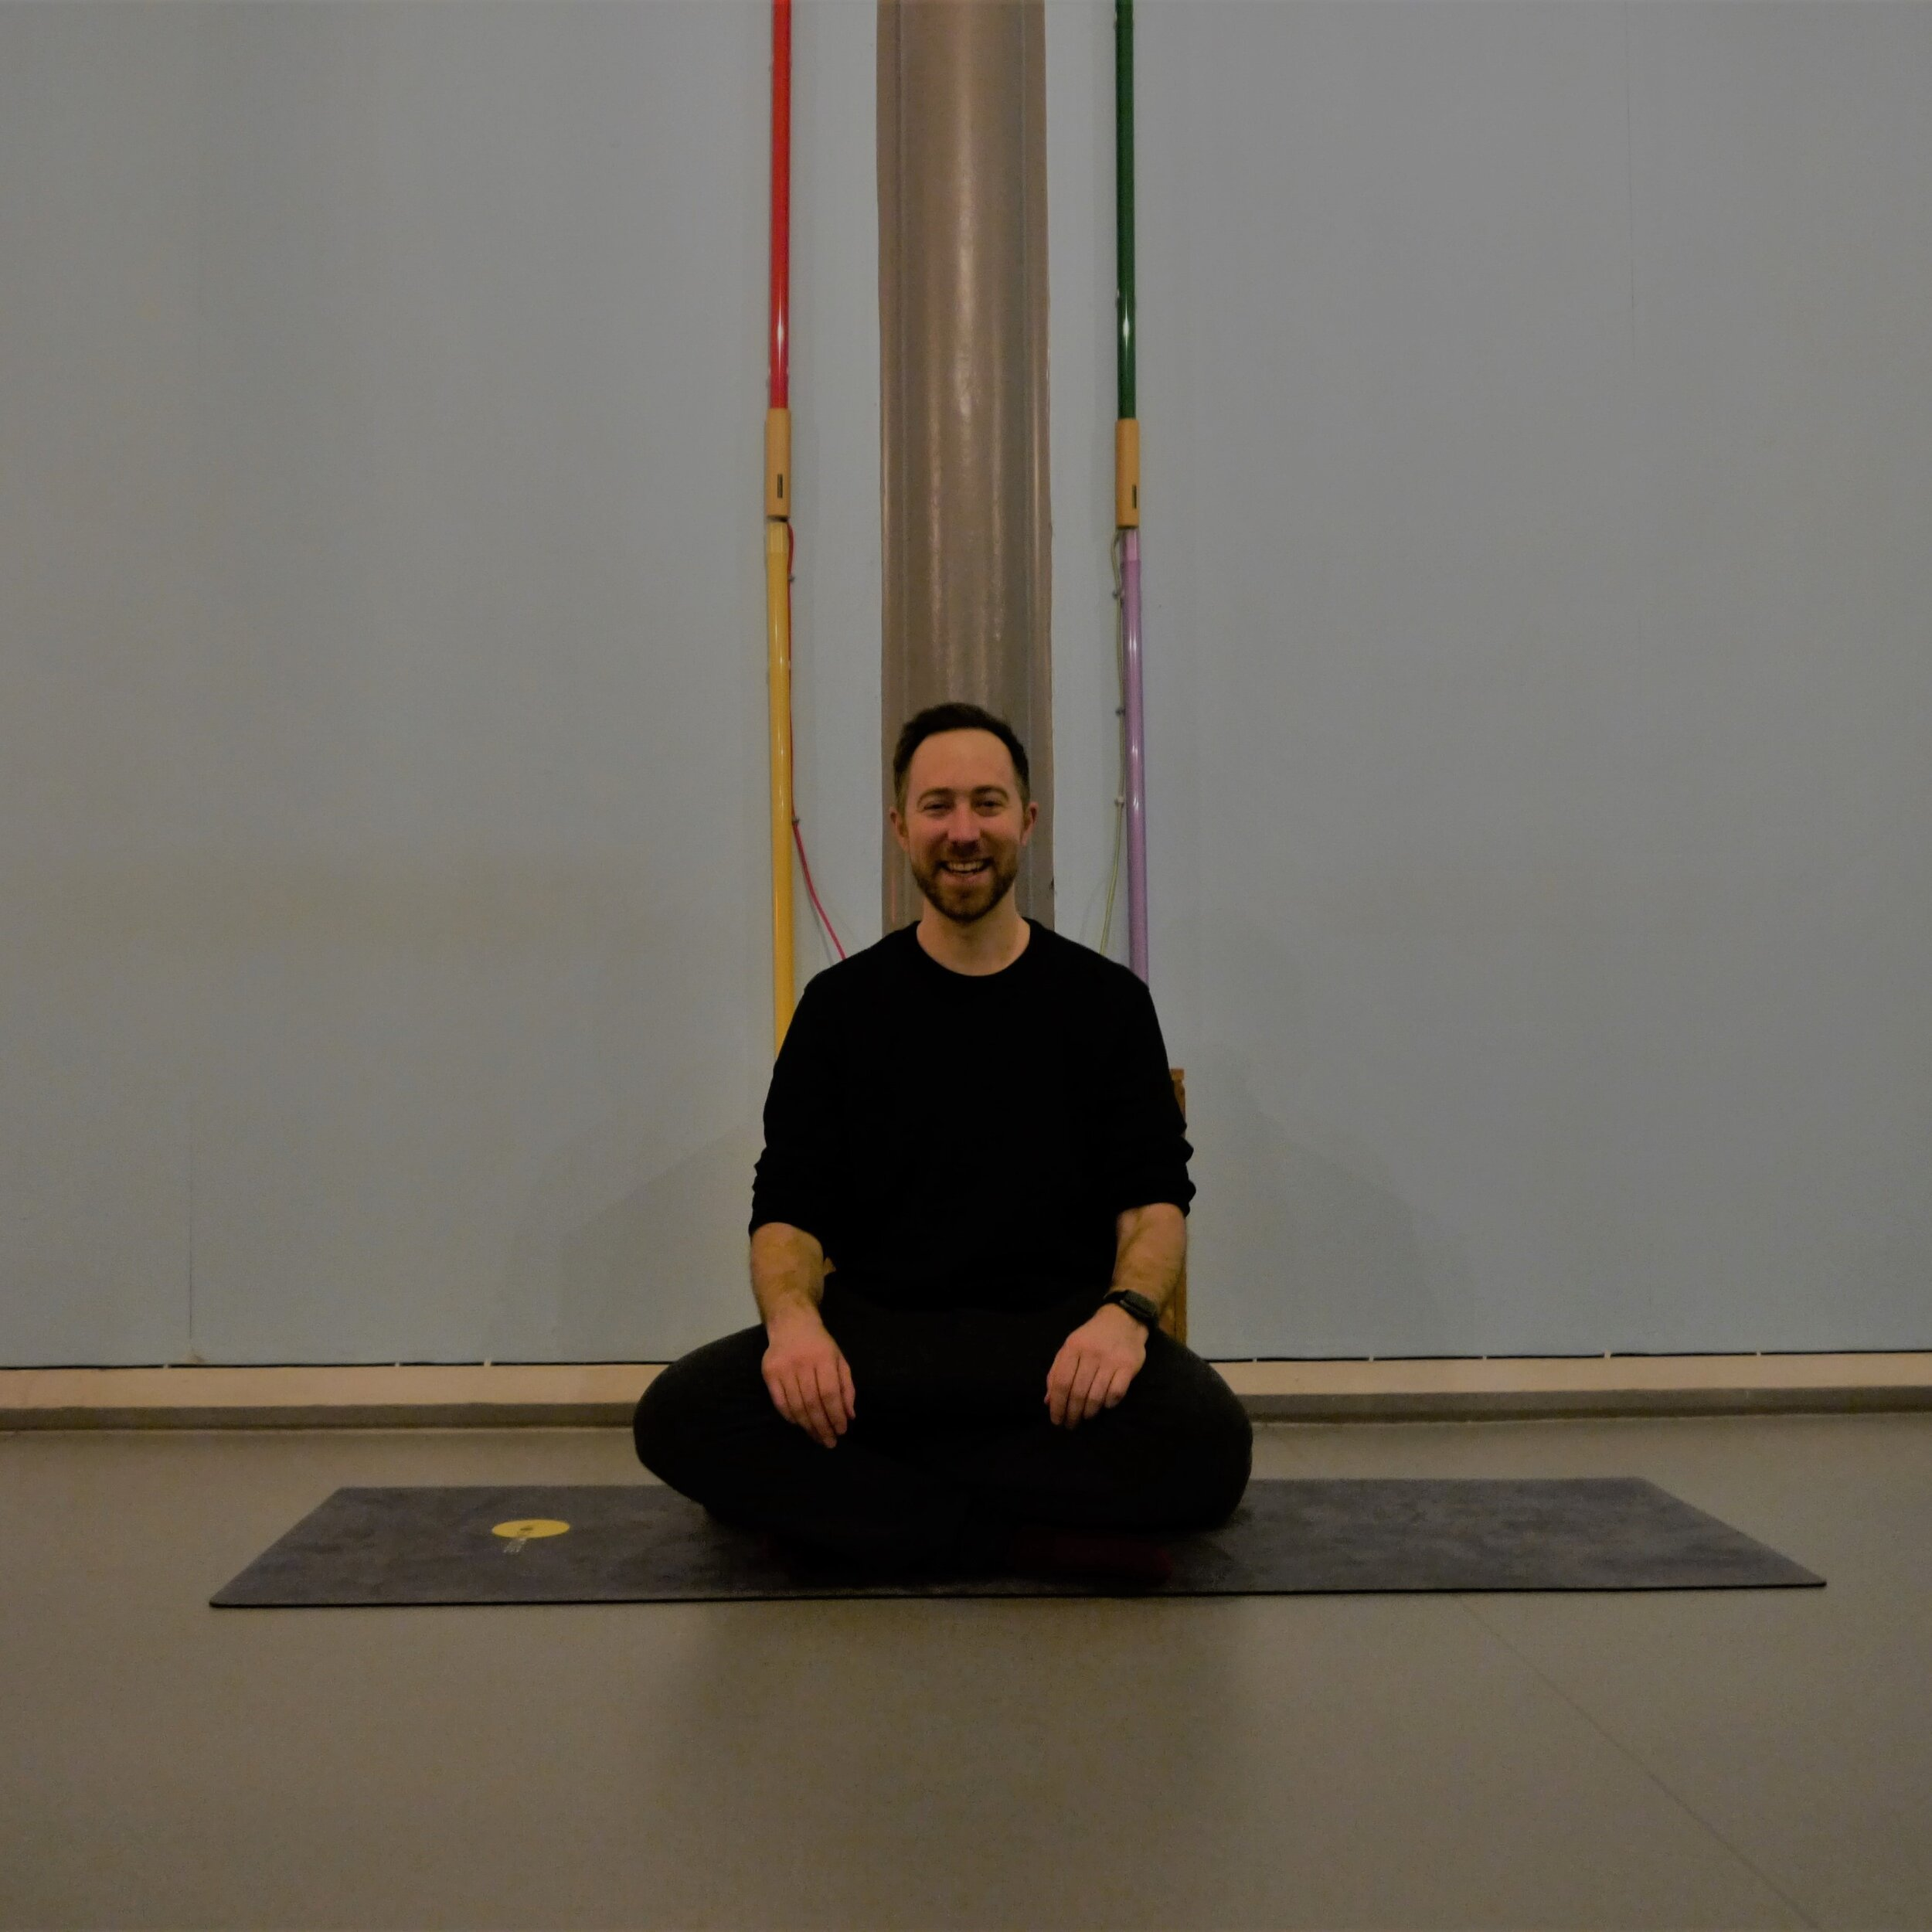 De-stress Digital visits Levitate Meditation to see Ryan Nell teaching in Peckham (photo by Lenore Setti)